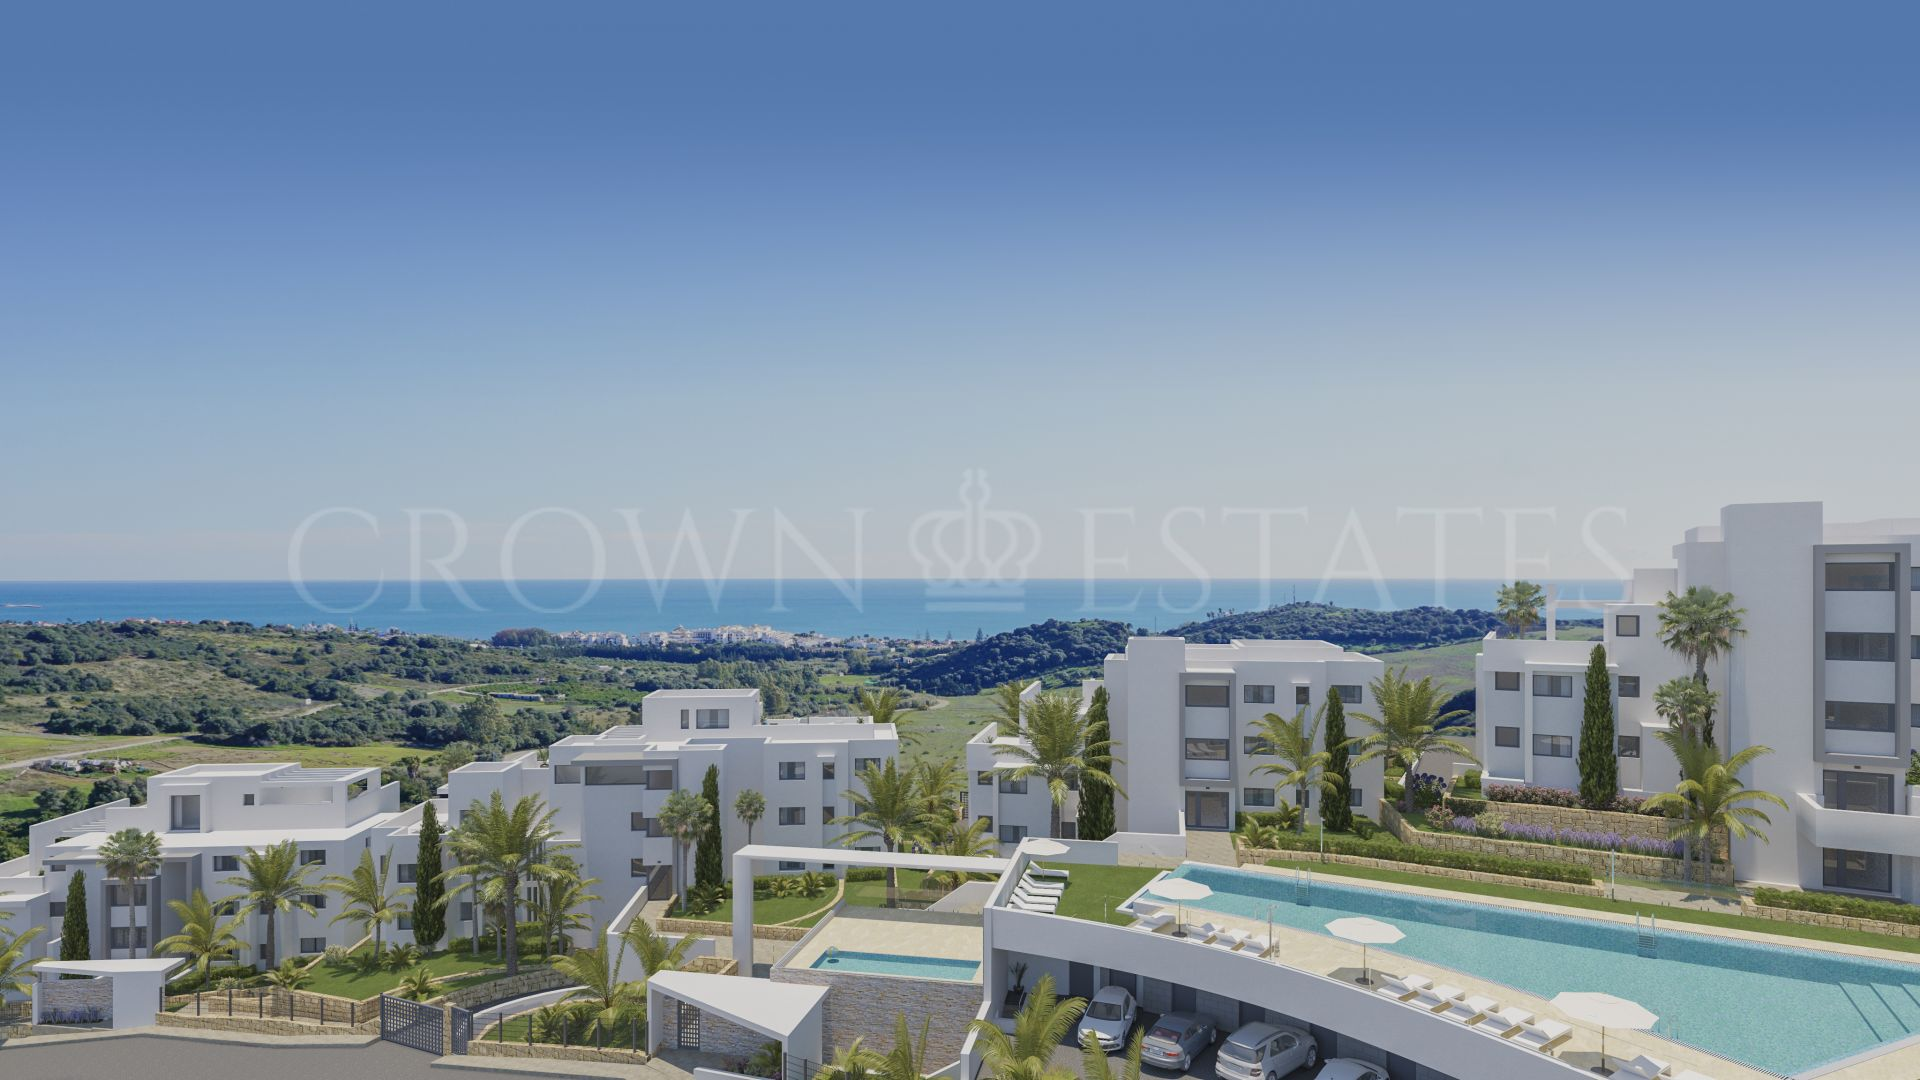 Contemporary apartments surrounded by golf